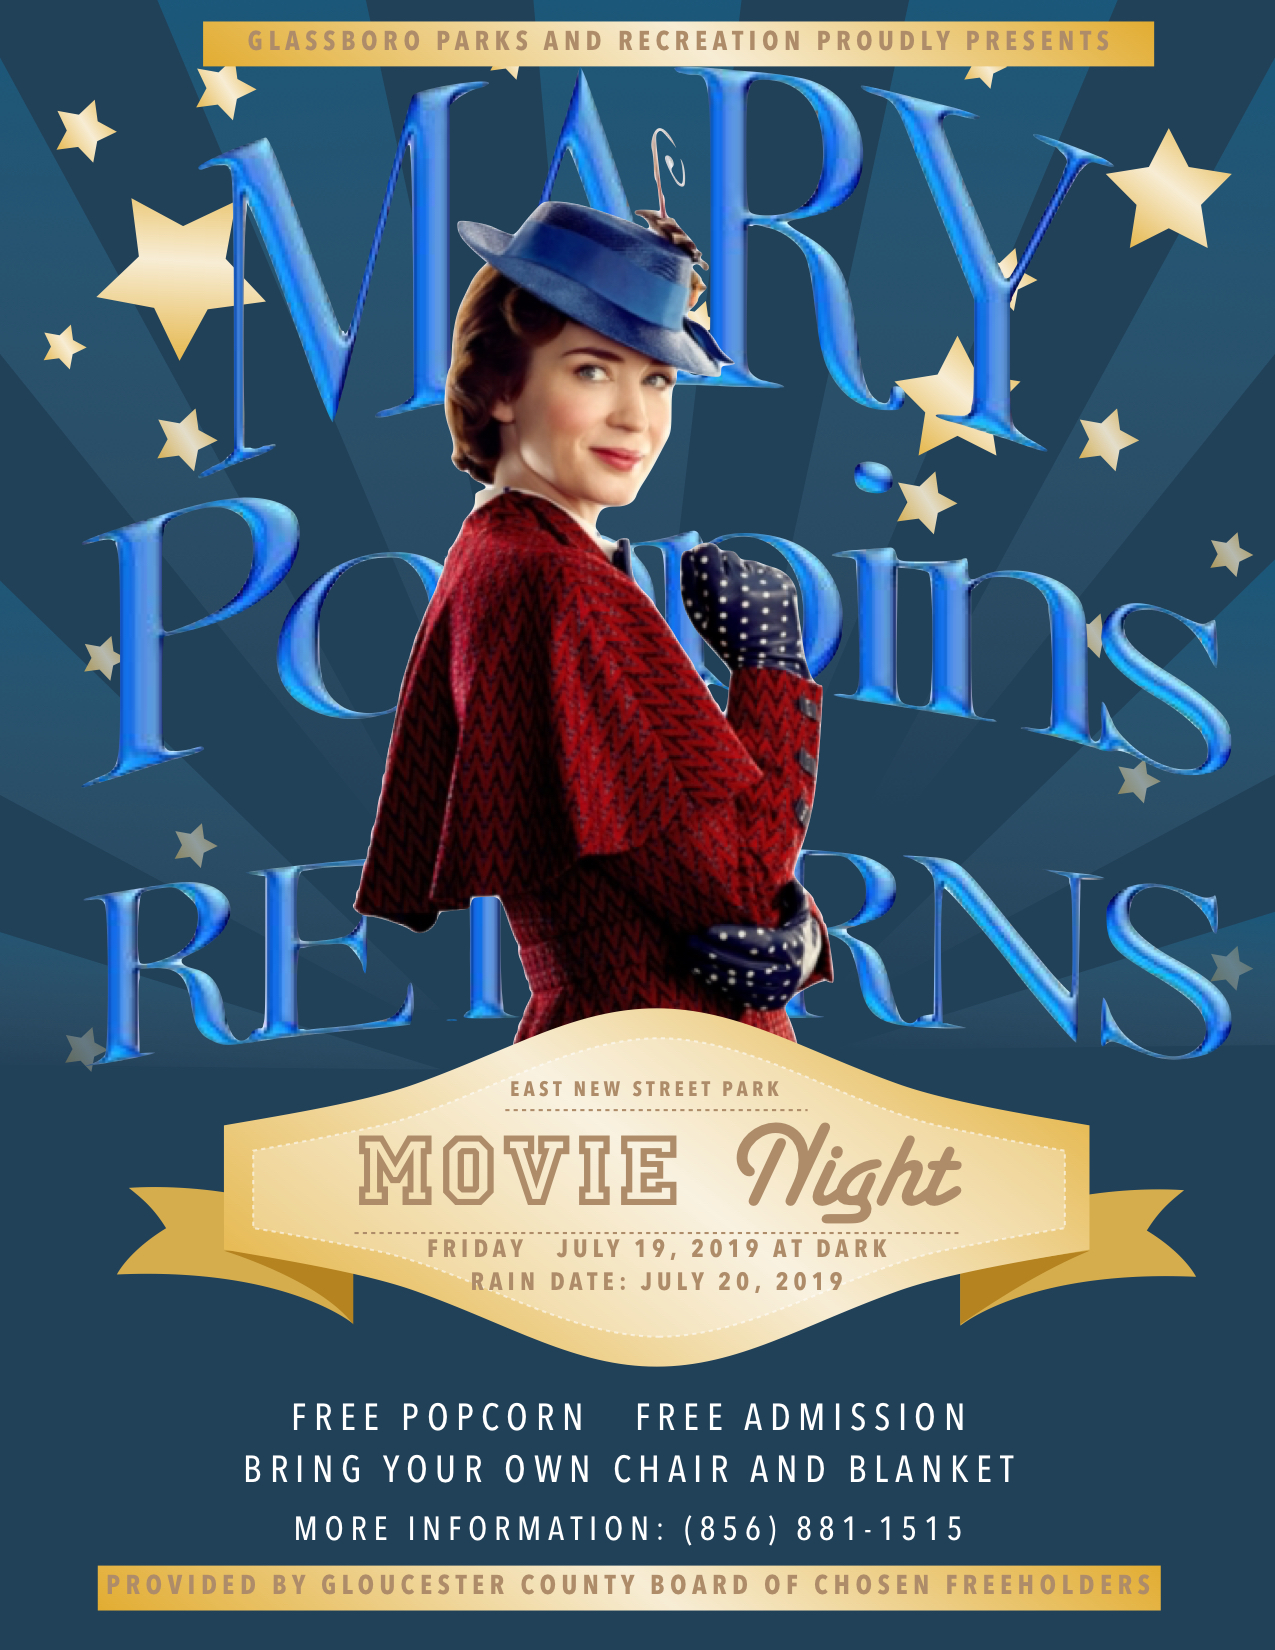 MOVIE NIGHT IN GLASSBORO MARY POPPINS RETURNS July 19, 2019.jpeg